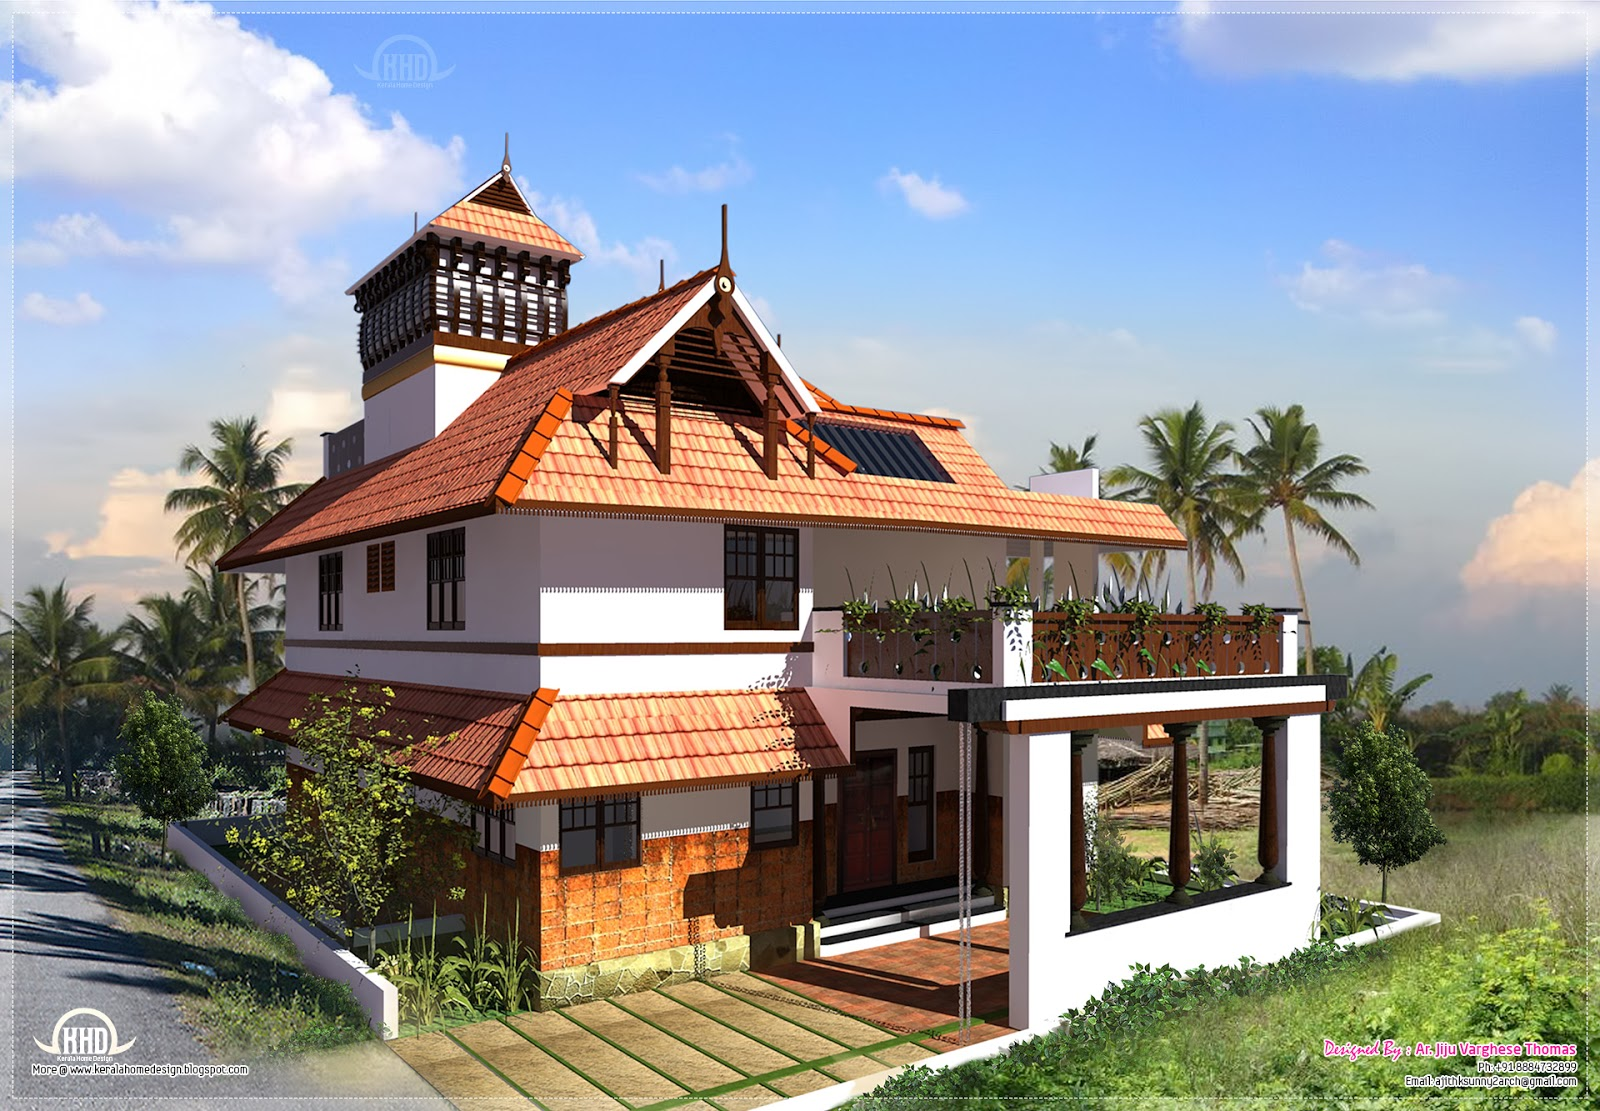 Kerala traditional house plans design joy studio design for Traditional house plans in kerala